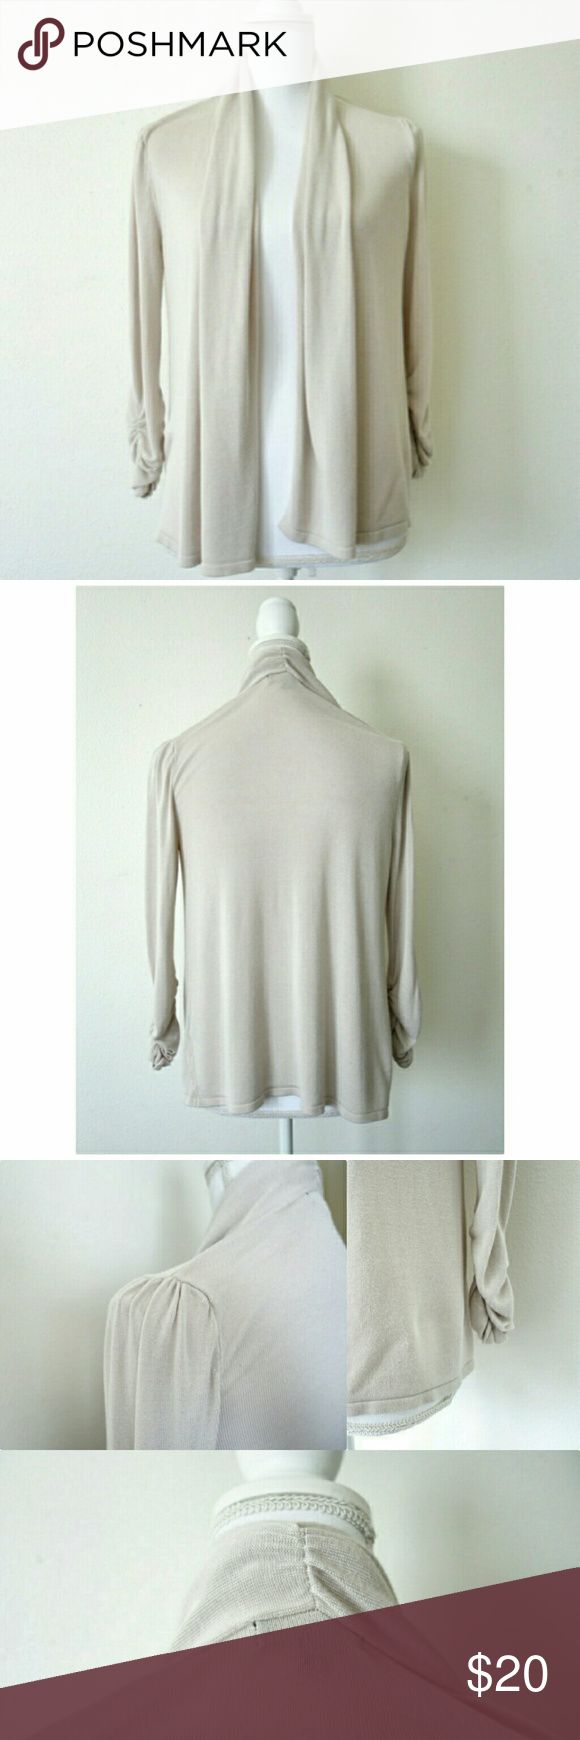 Premise Bone Beige Shawl Collar Cardigan sz M Beautiful open front sweater, lightweight material, rouched sleeves and gathered at the back of the neck. A great neutral staple piece, goes with anything, great for work or weekend. Brand new condition, no tags. Premise Sweaters